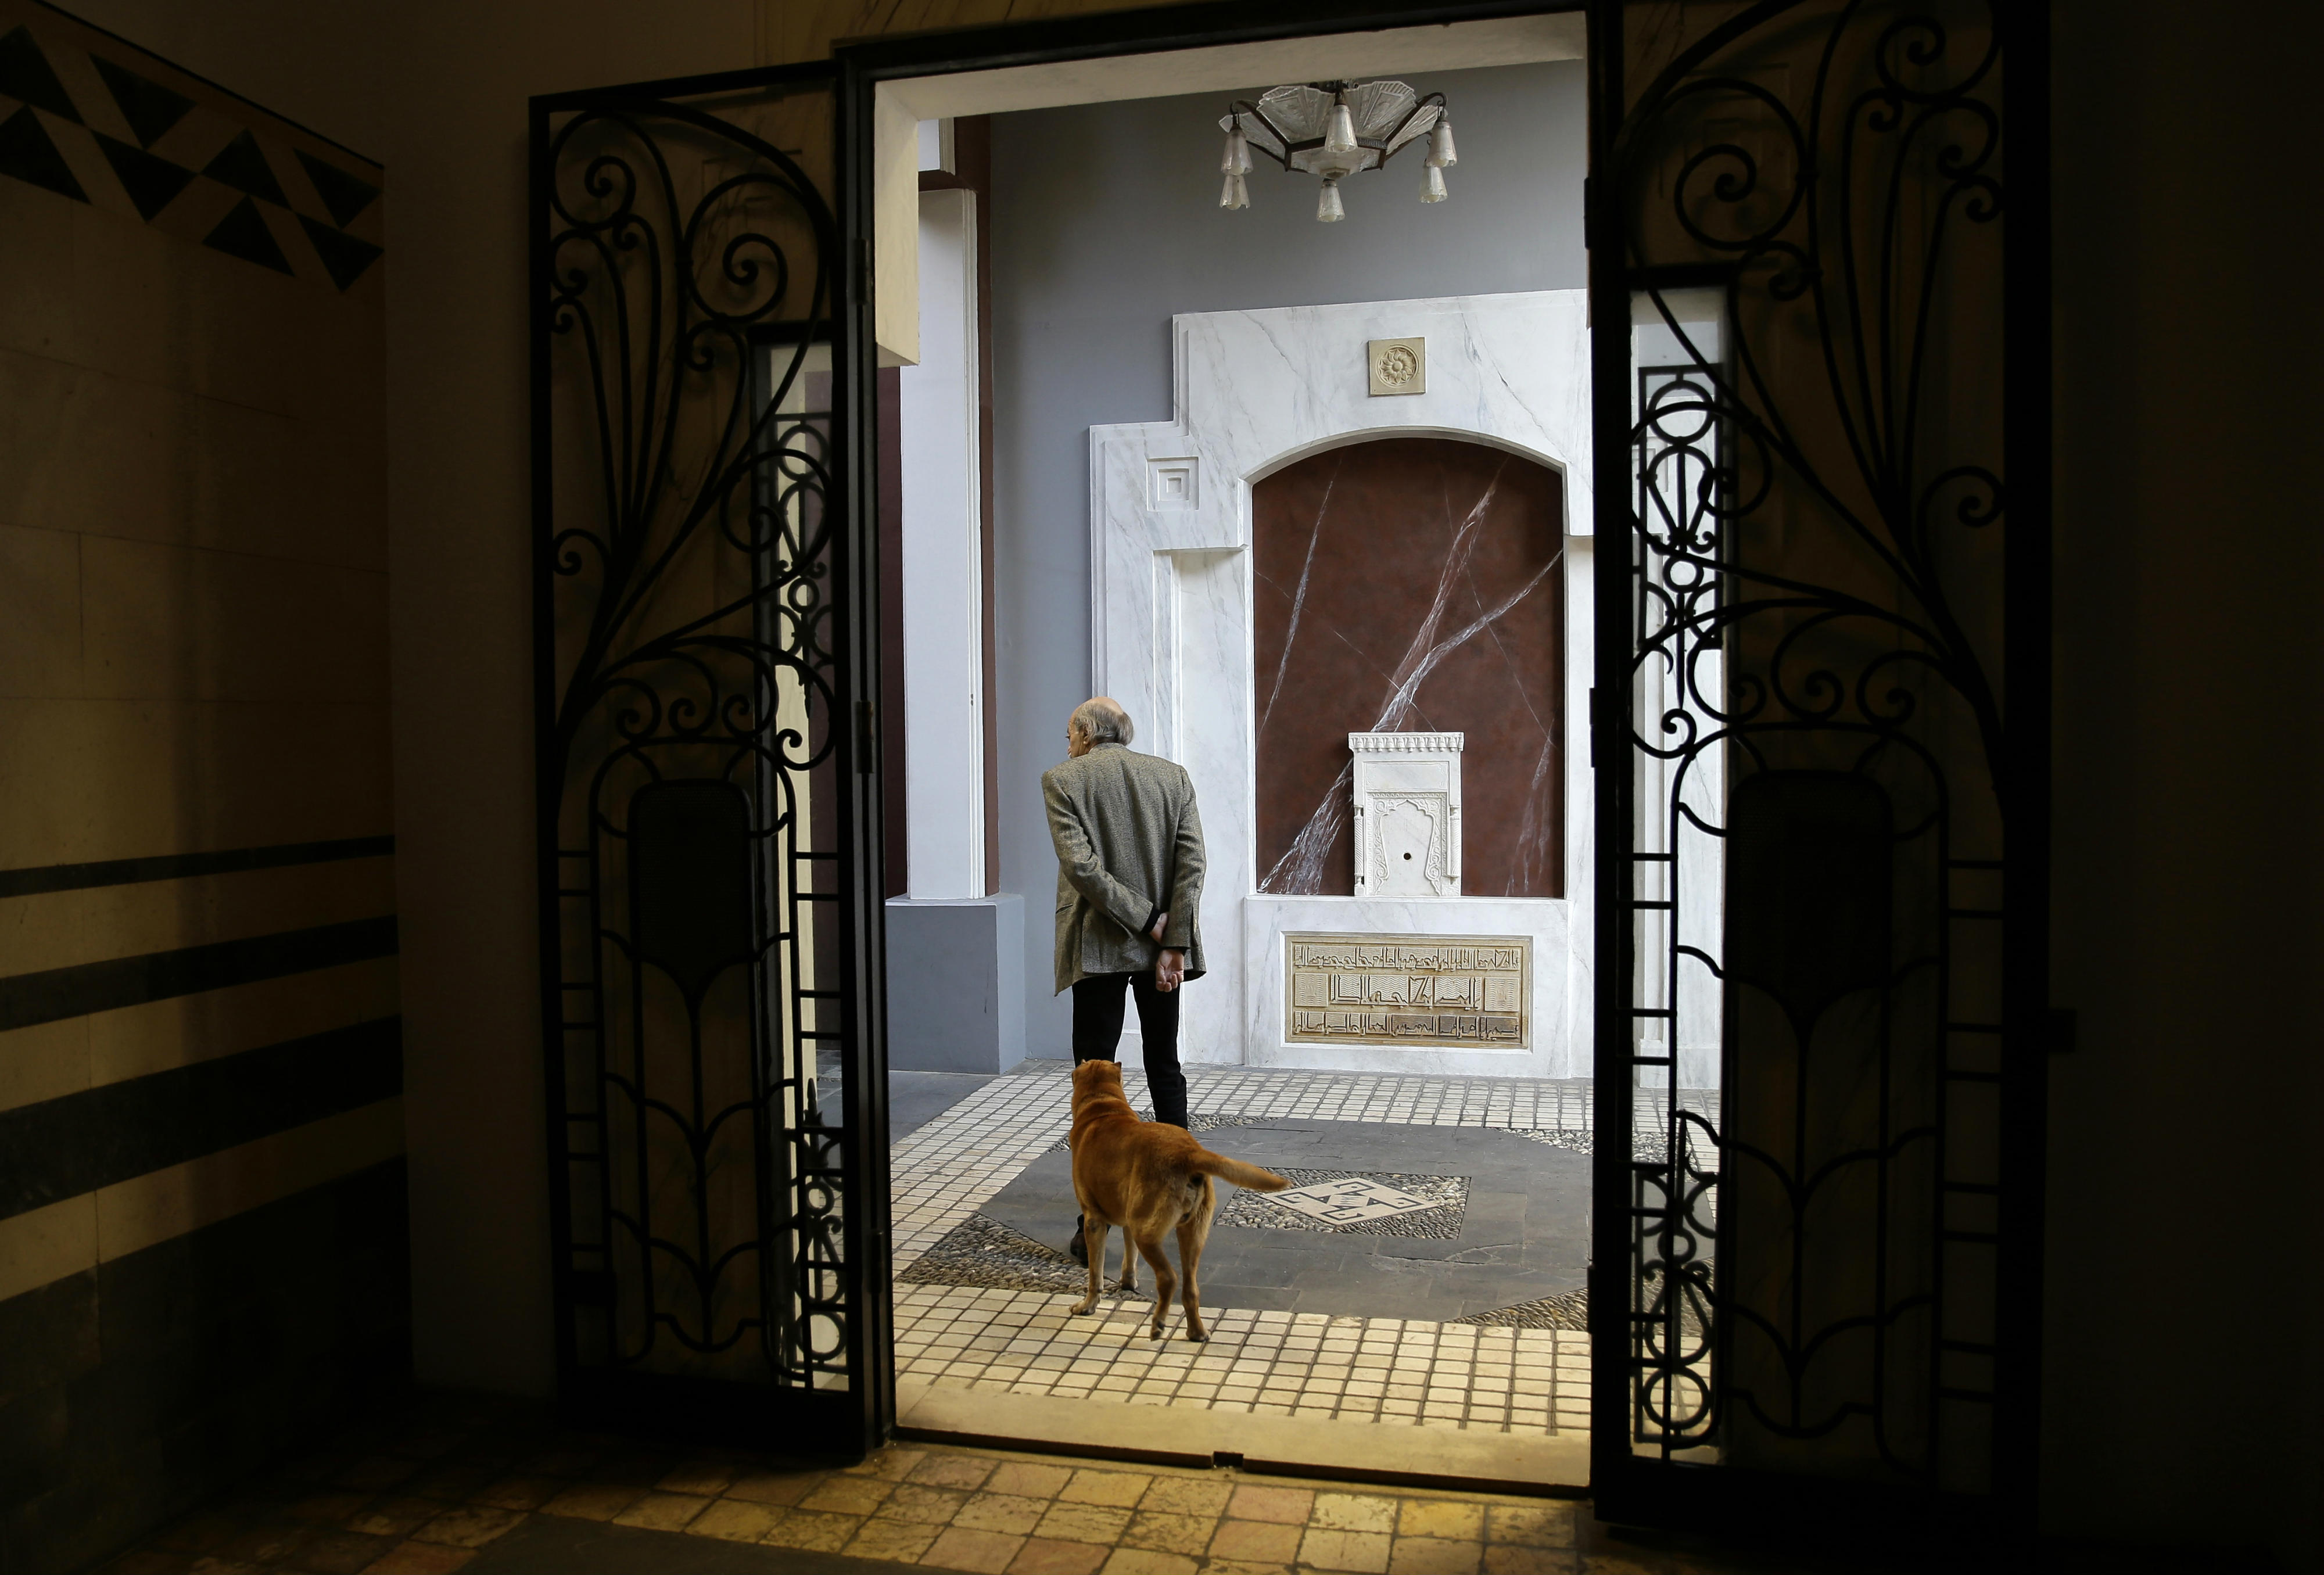 Lebanese Druze leader Walid Joumblatt walks with his Shar-Pei dog Oscar at his house in Beirut's Clemenceau street (AFP)